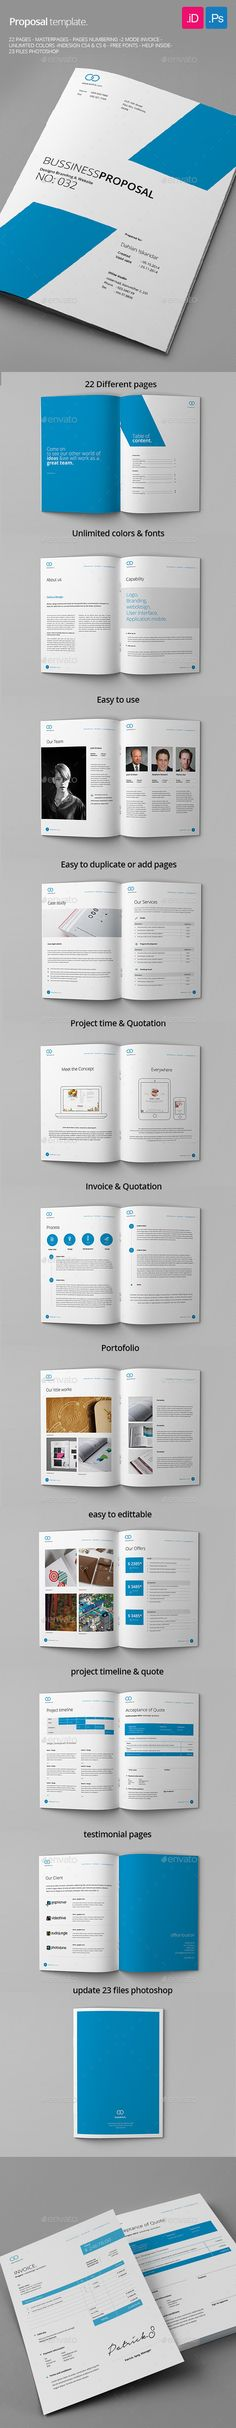 Brochure Design By Swerve Design Group For Bellwood Health